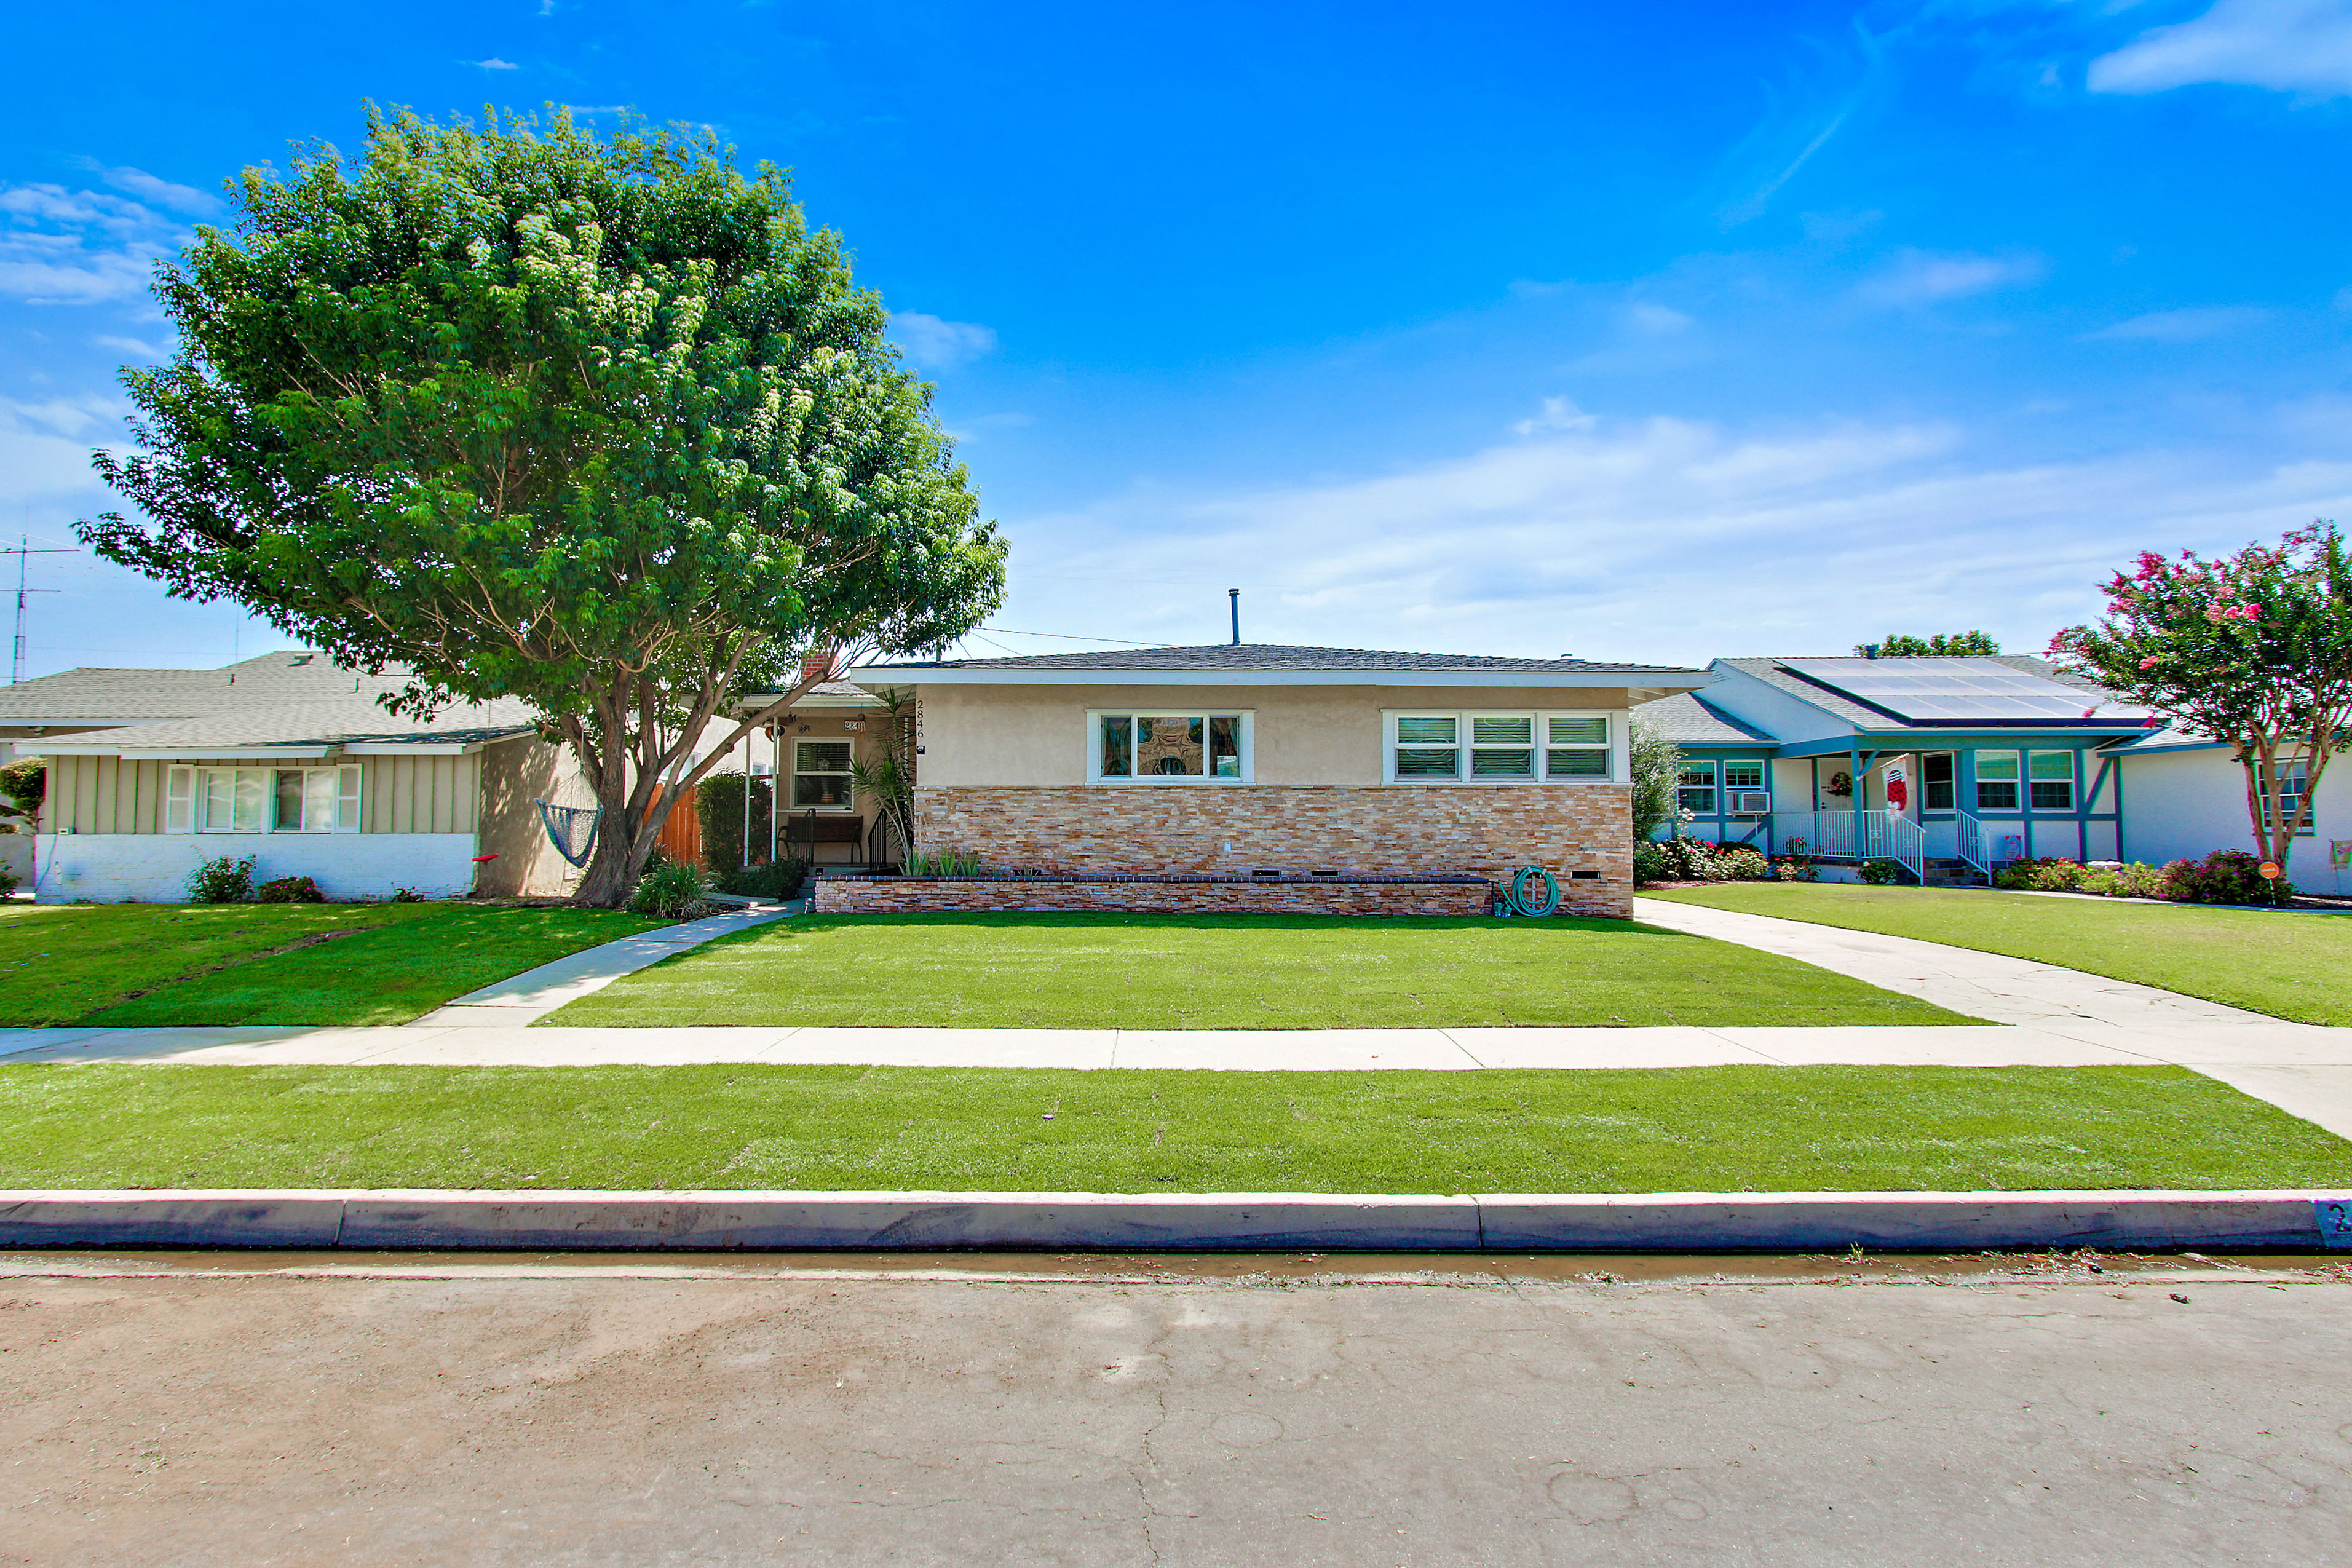 2846 Ladoga Avenue, Long Beach CA 90815